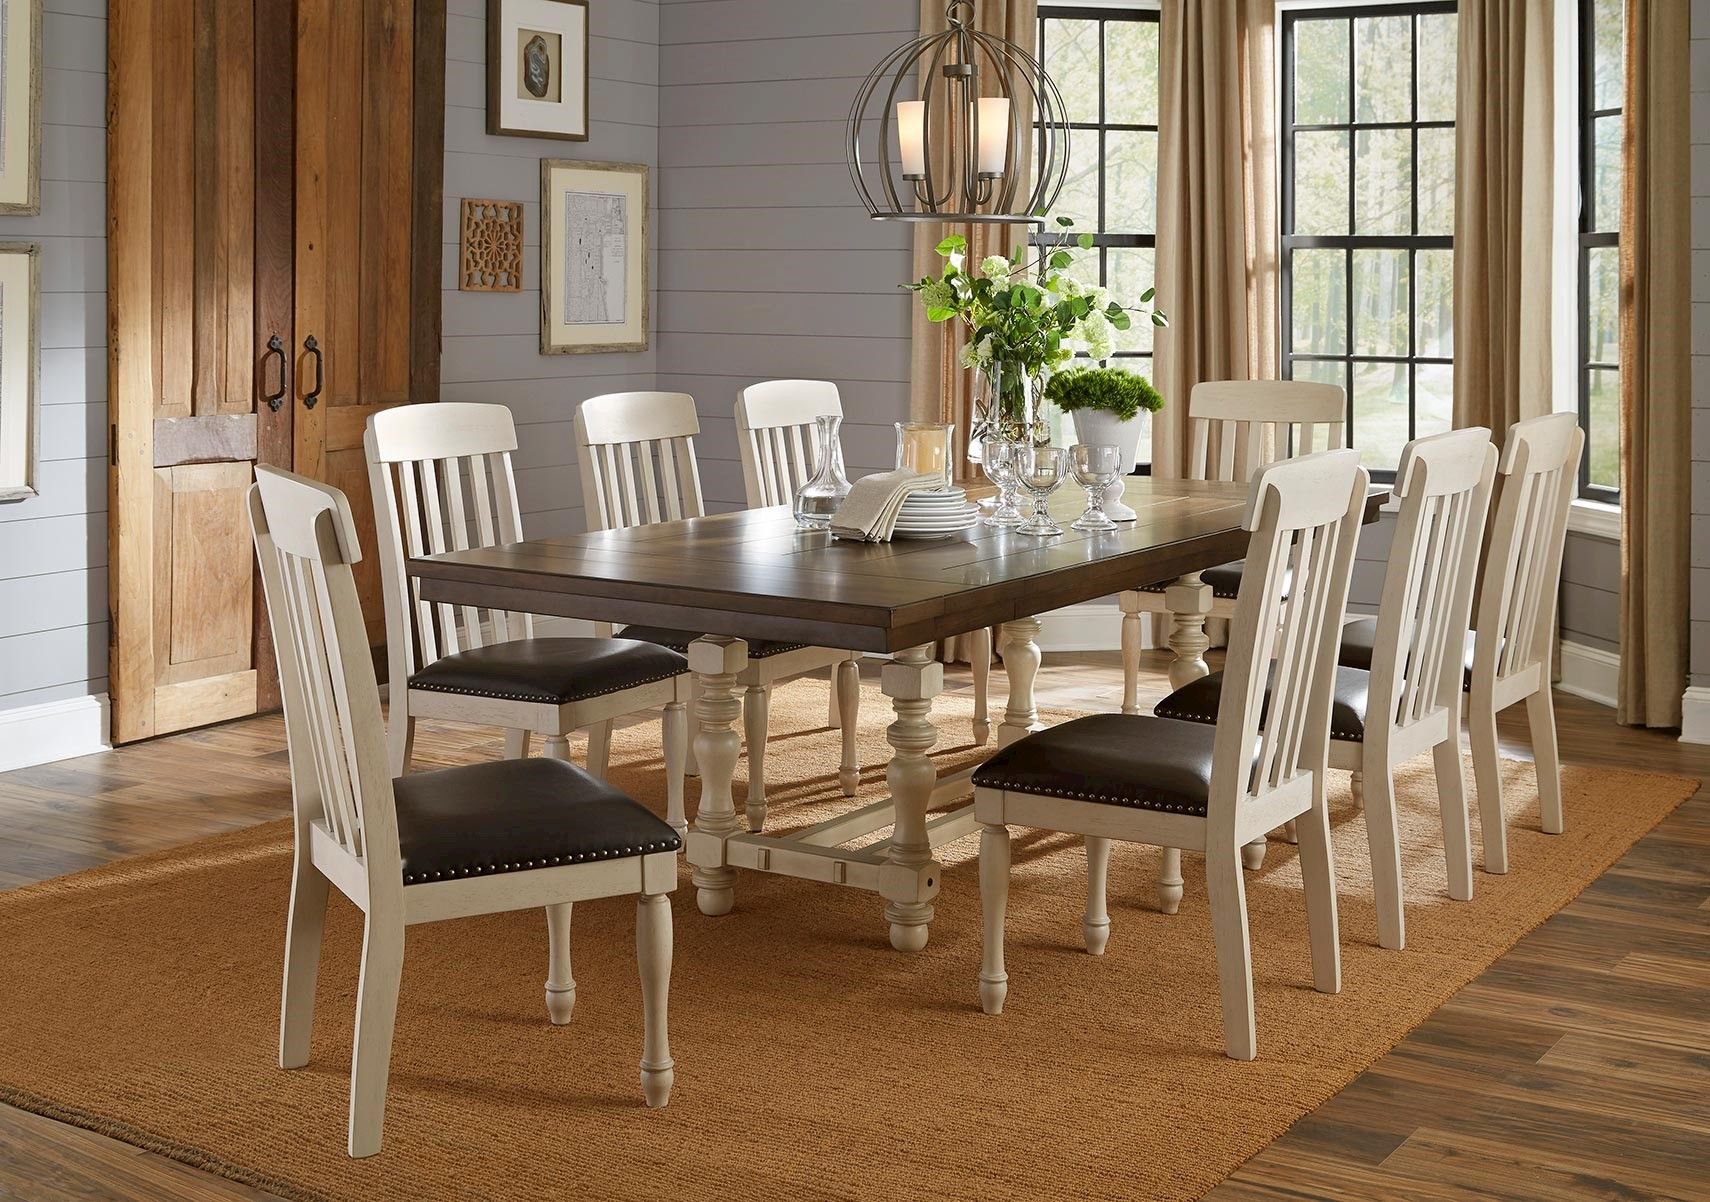 Lacks Samson 9 Pc Dining Room Set Dining Room Sets Living